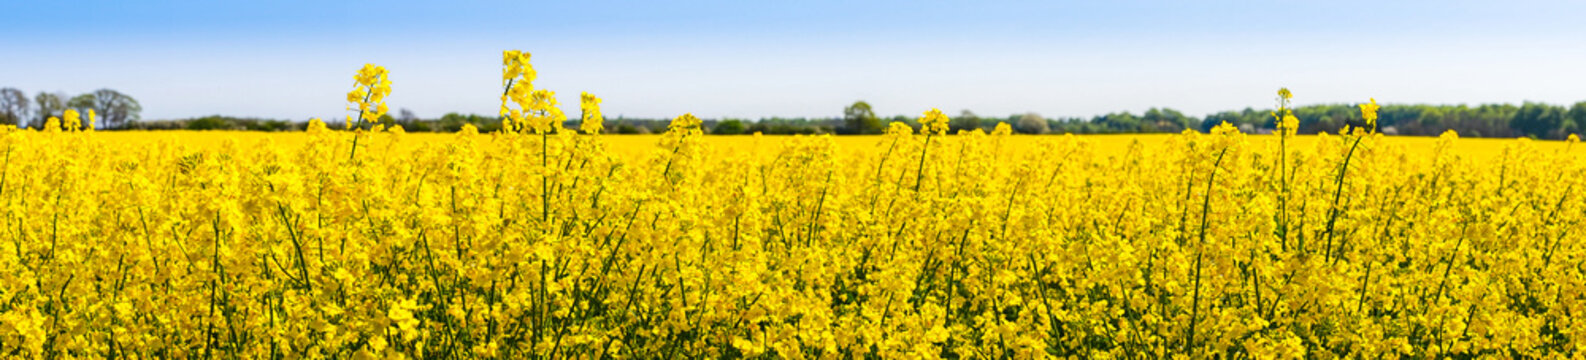 Rapeseed flowers in the spring